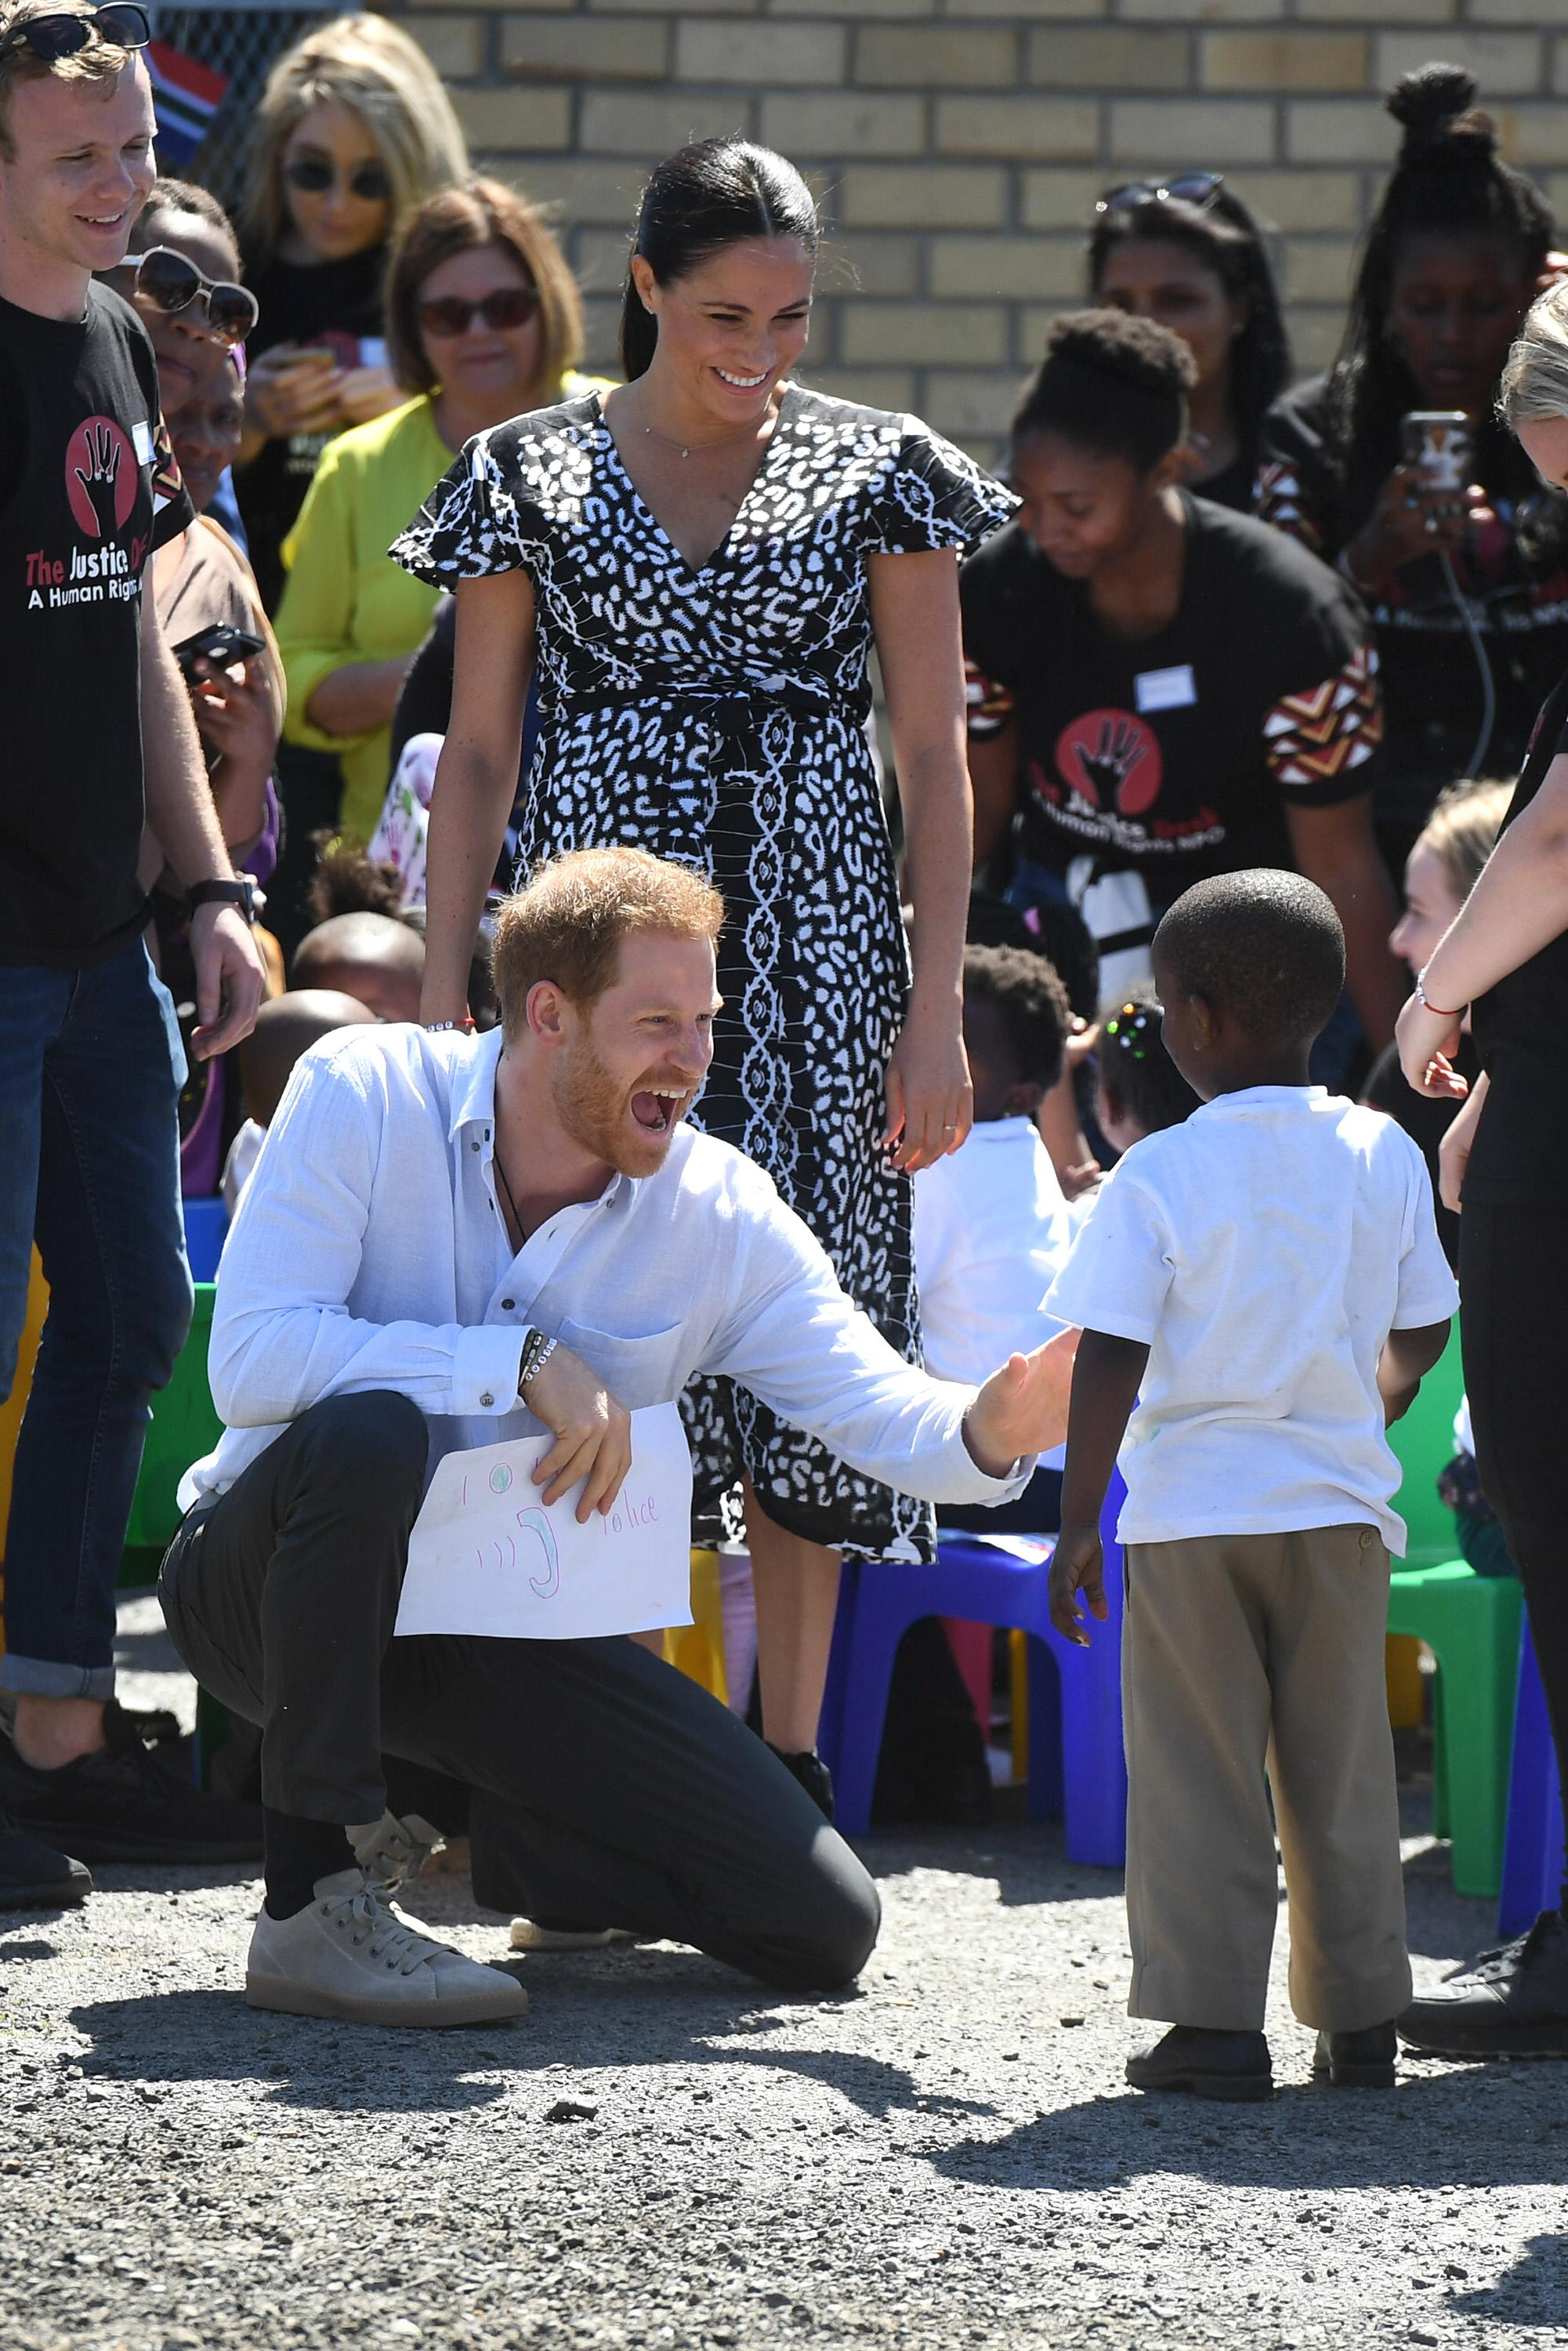 CAPE TOWN, SOUTH AFRICA - SEPTEMBER 23: Prince Harry, Duke of Sussex and Meghan, Duchess of Sussex visit a workshop that teaches children about their rights, self-awareness and safety during their royal tour of South Africa on September 23, 2019 in Cape Town, South Africa. (Photo by Samir Hussein/WireImage)